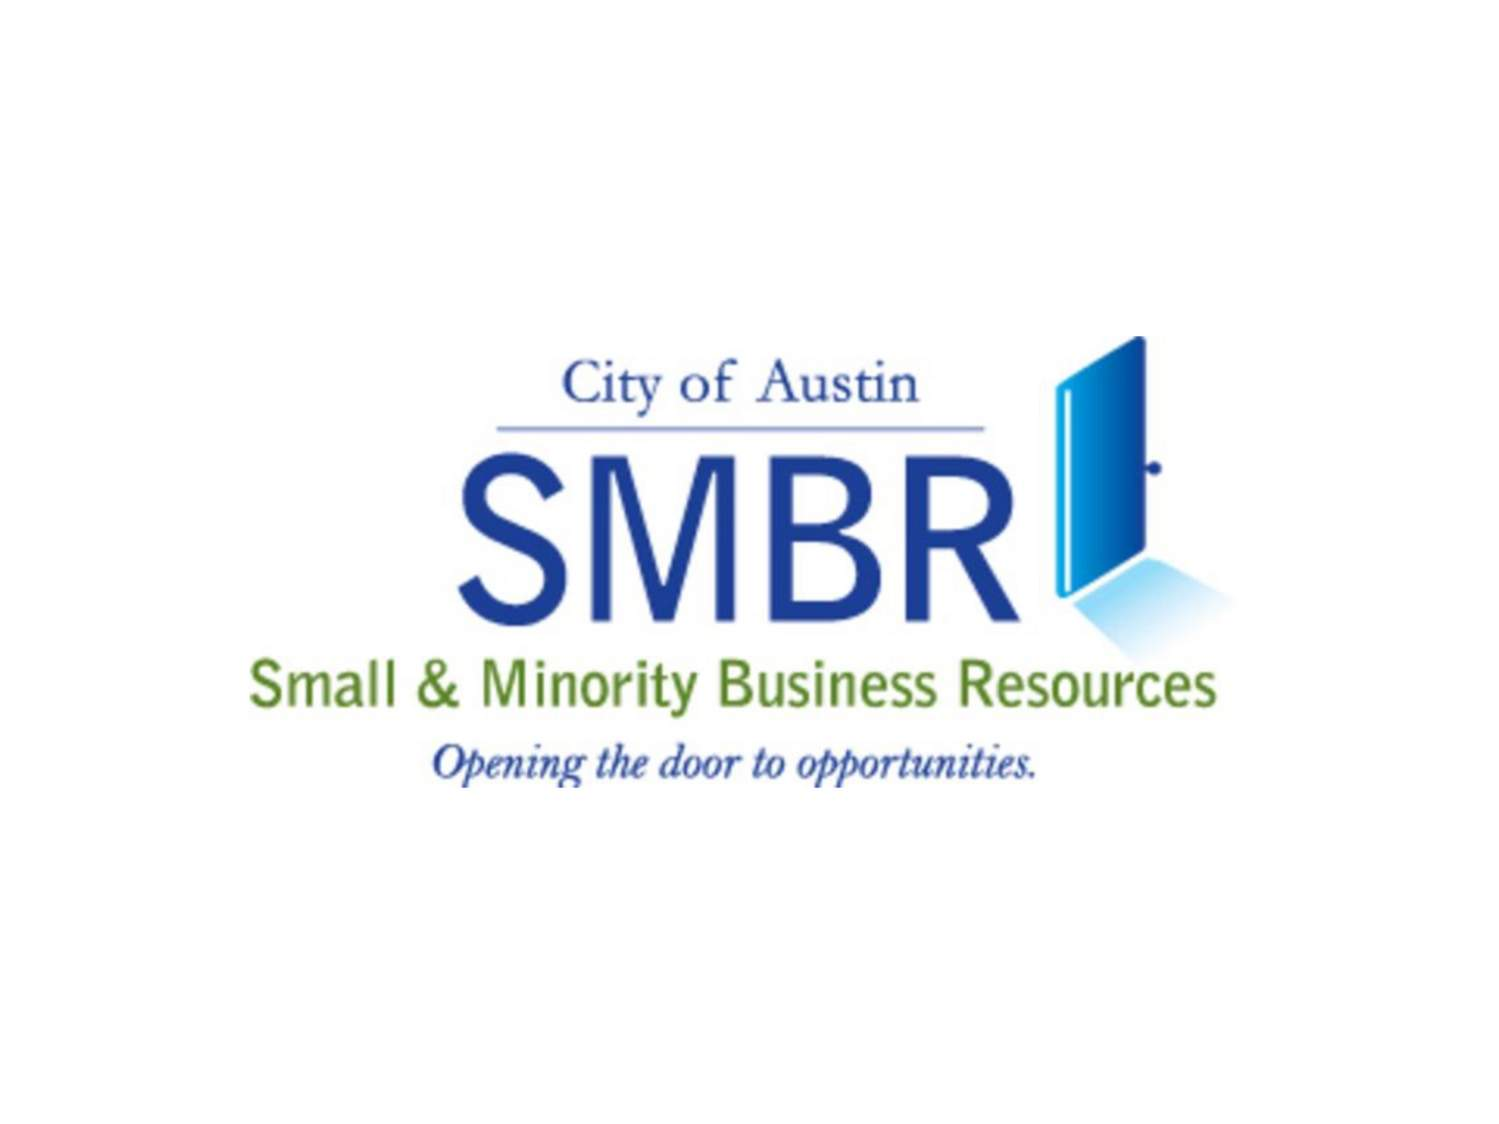 City of Austin Small & Minority Business Resources (SMBR)